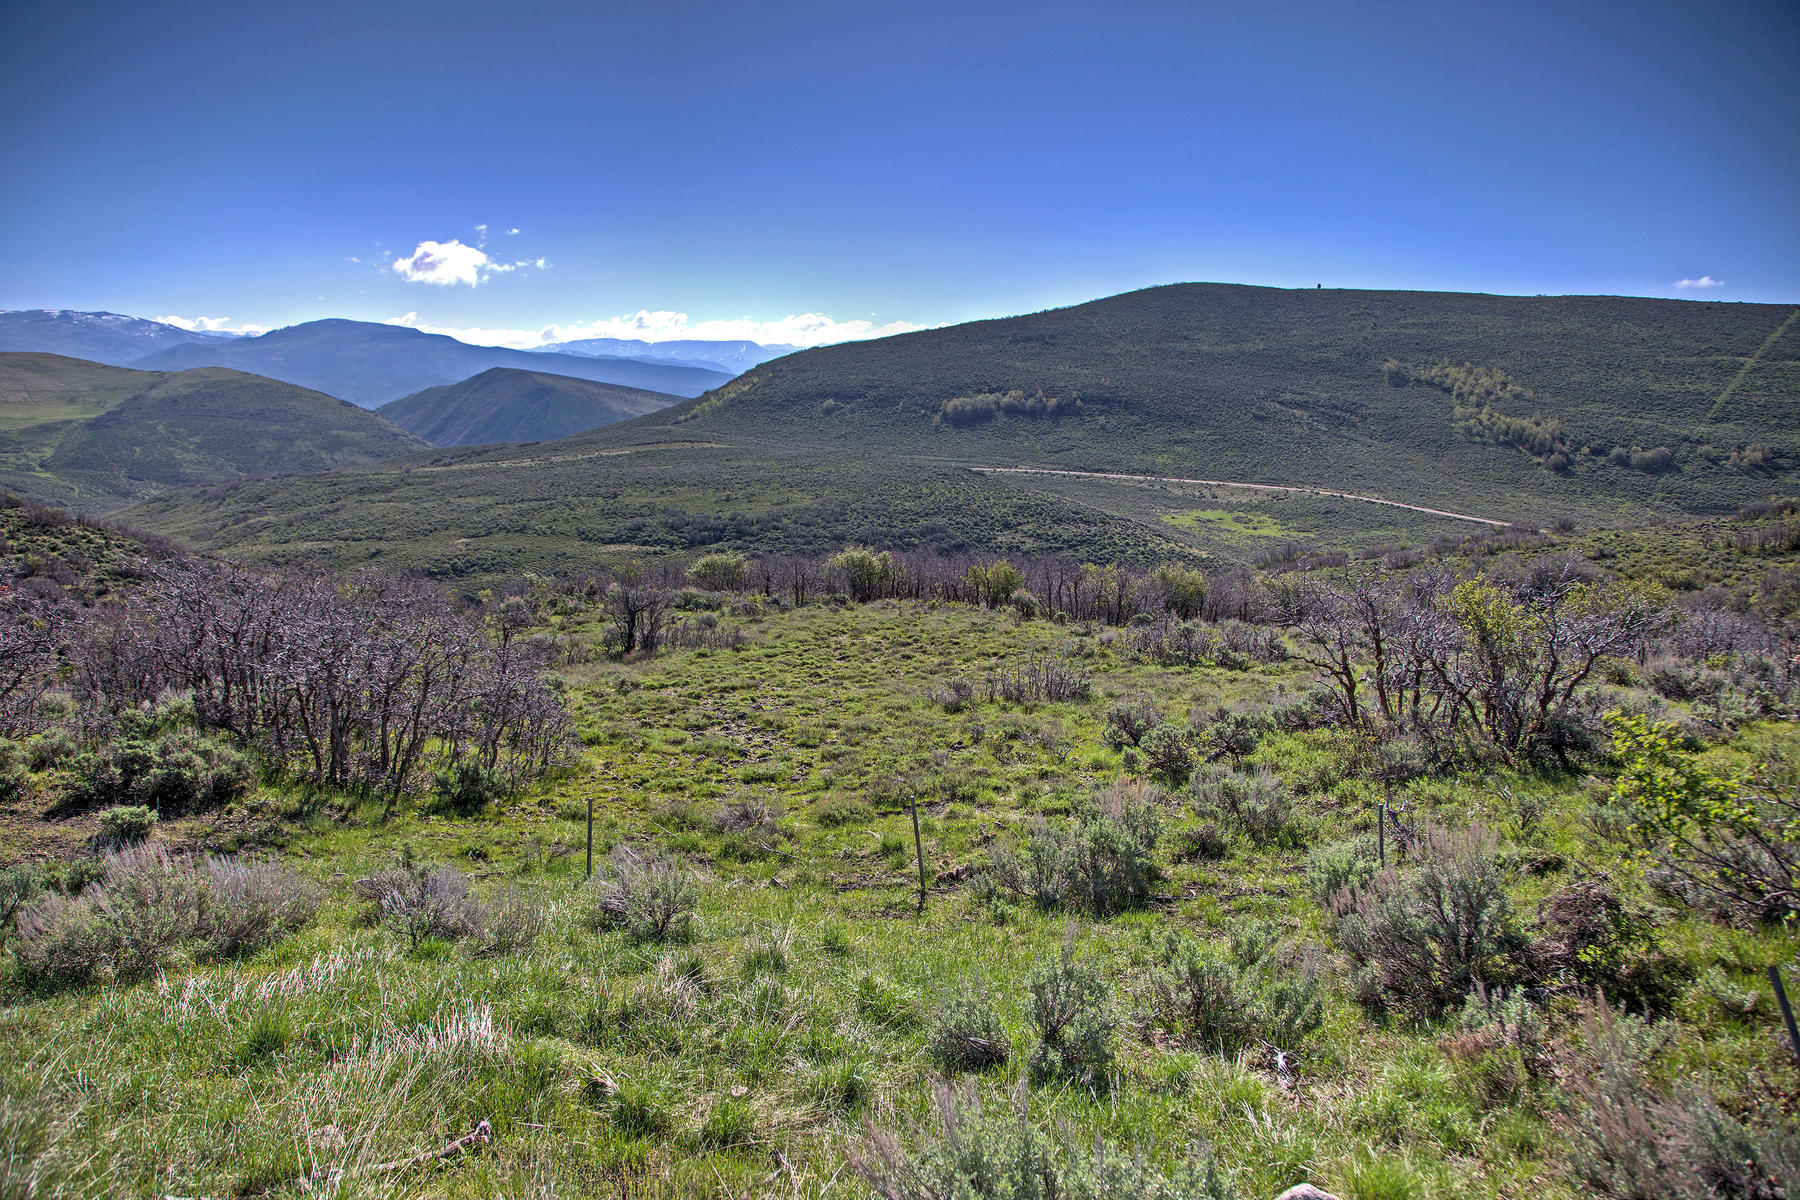 Terreno para Venda às Great Custom Homesite with Direct Views of Uinta Mountains and Open Space 3844 E Outcrop Rd Lot 43 Park City, Utah, 84098 Estados Unidos